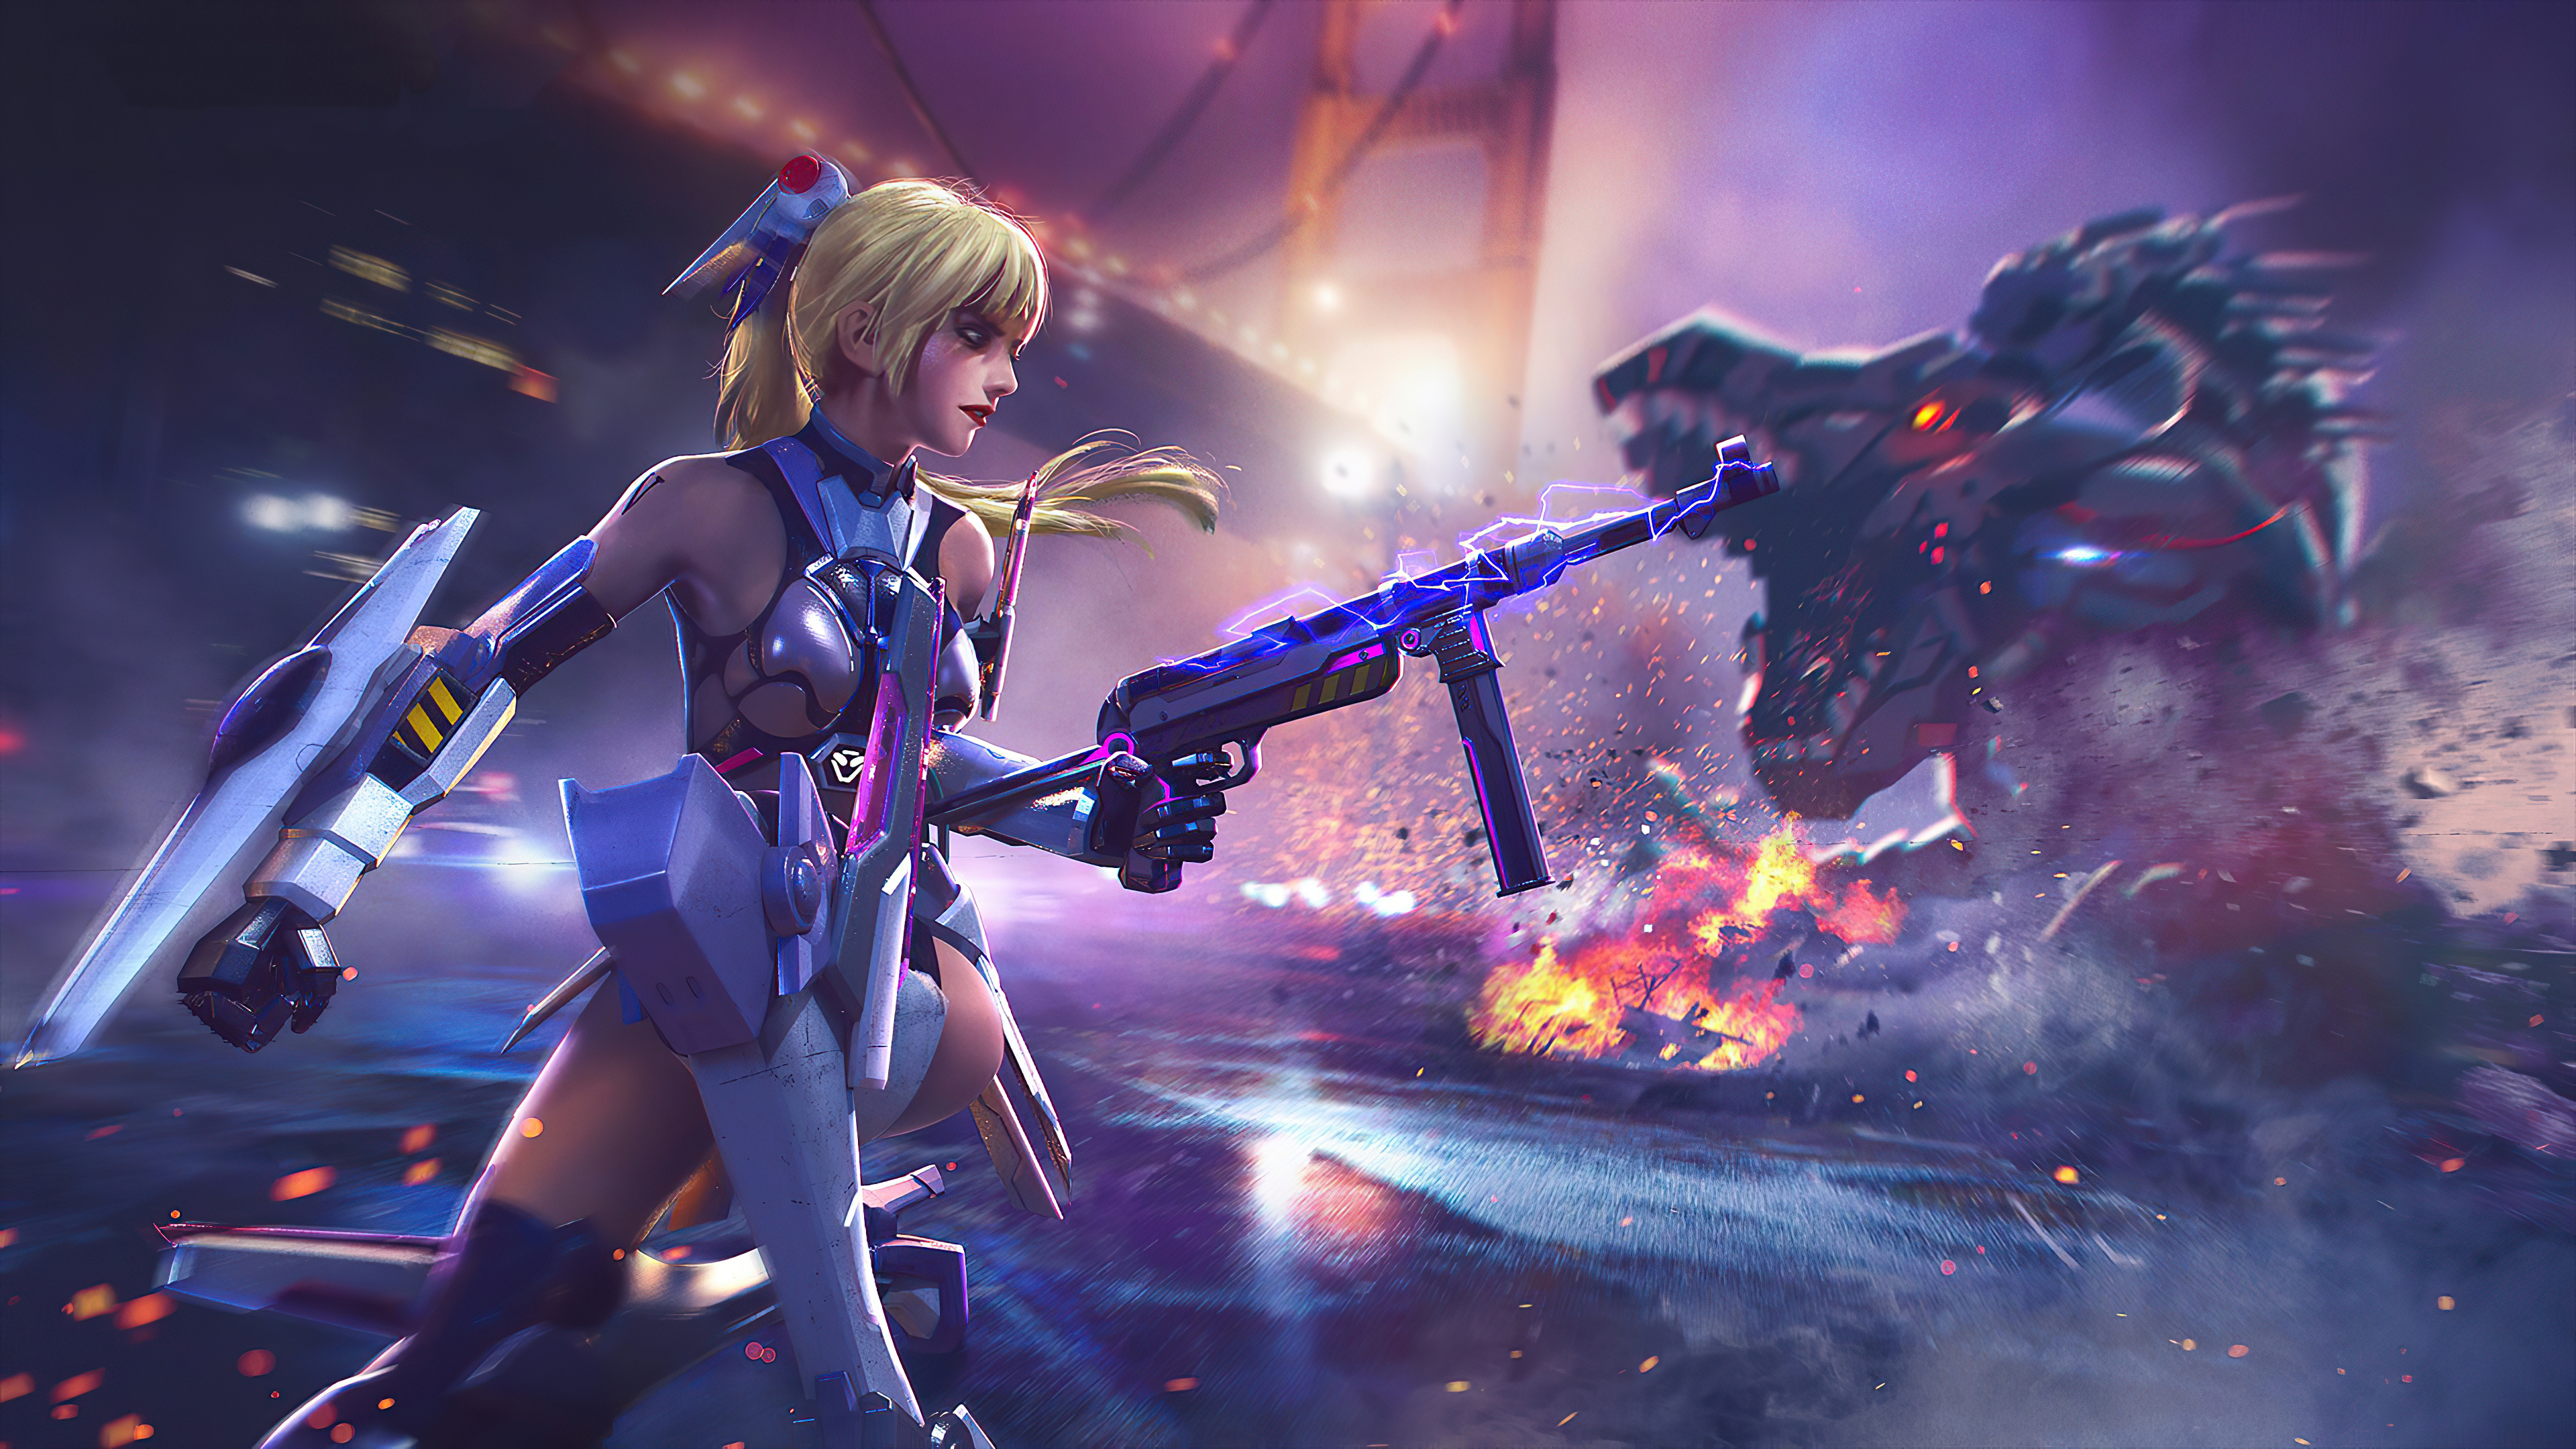 Cyber Girl Garena Free Fire Game 4k Hd Games 4k Wallpapers Images Backgrounds Photos And Pictures